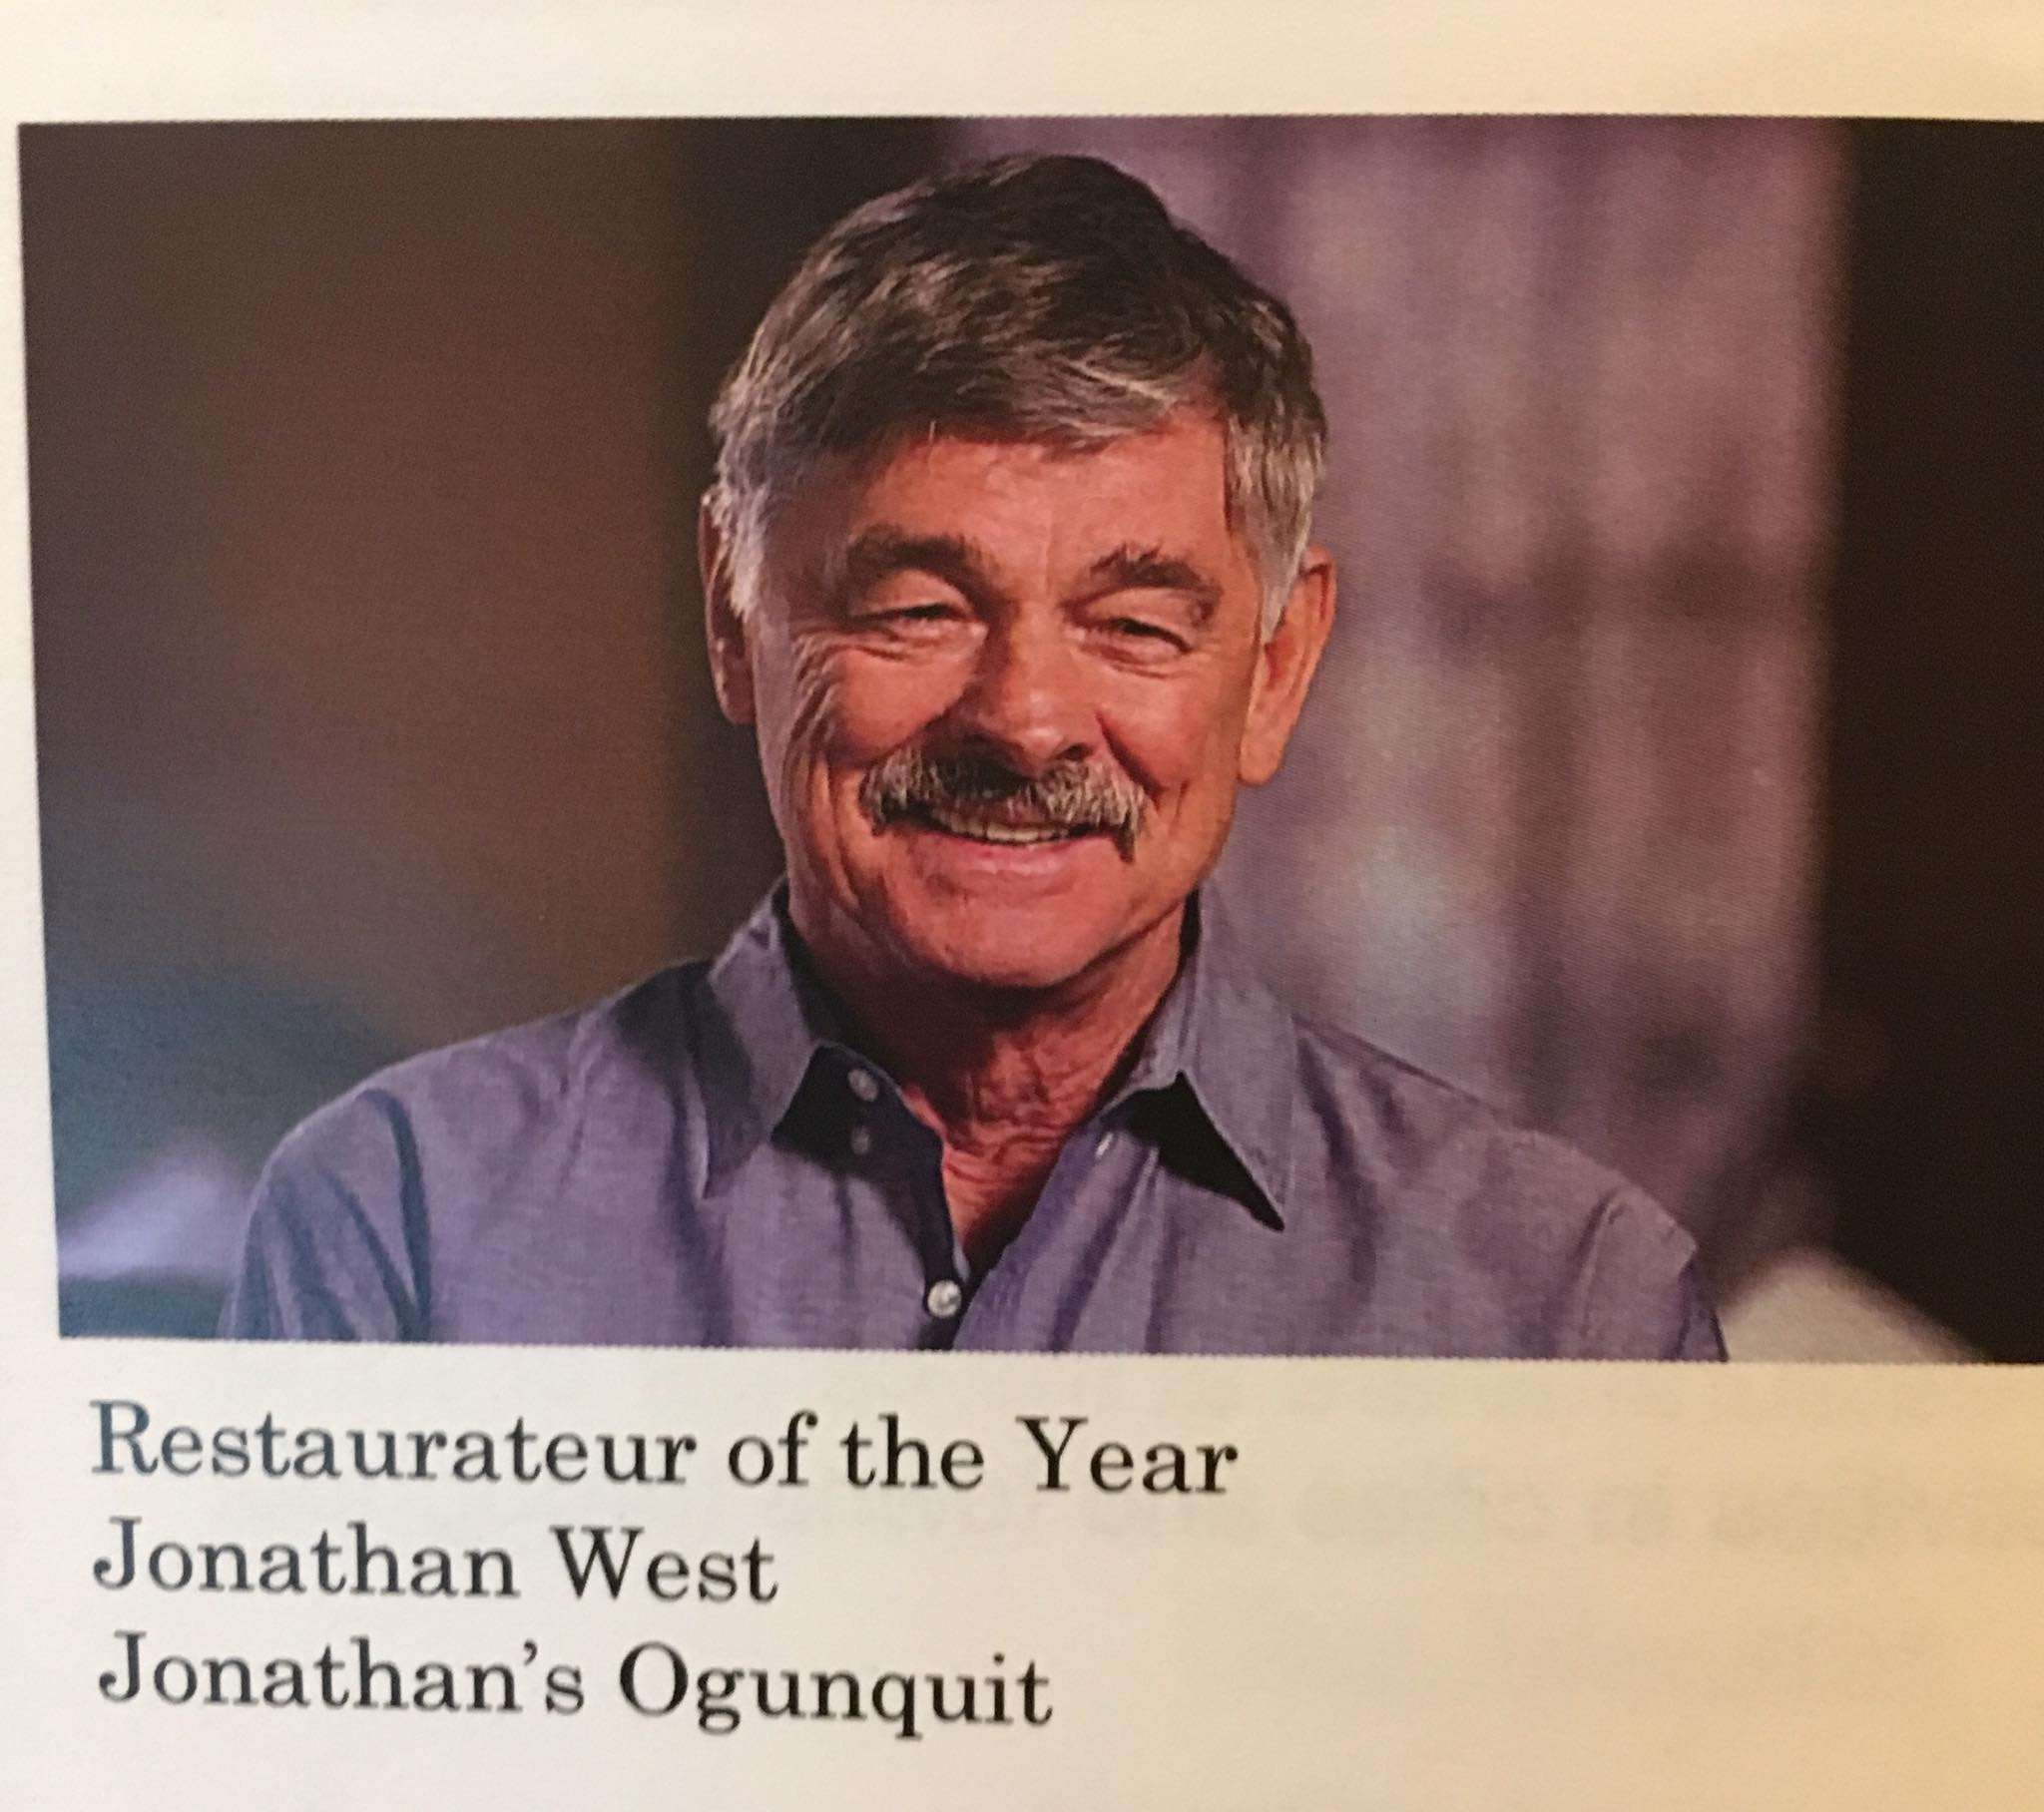 Voted Maine Restaurateur of the Year!